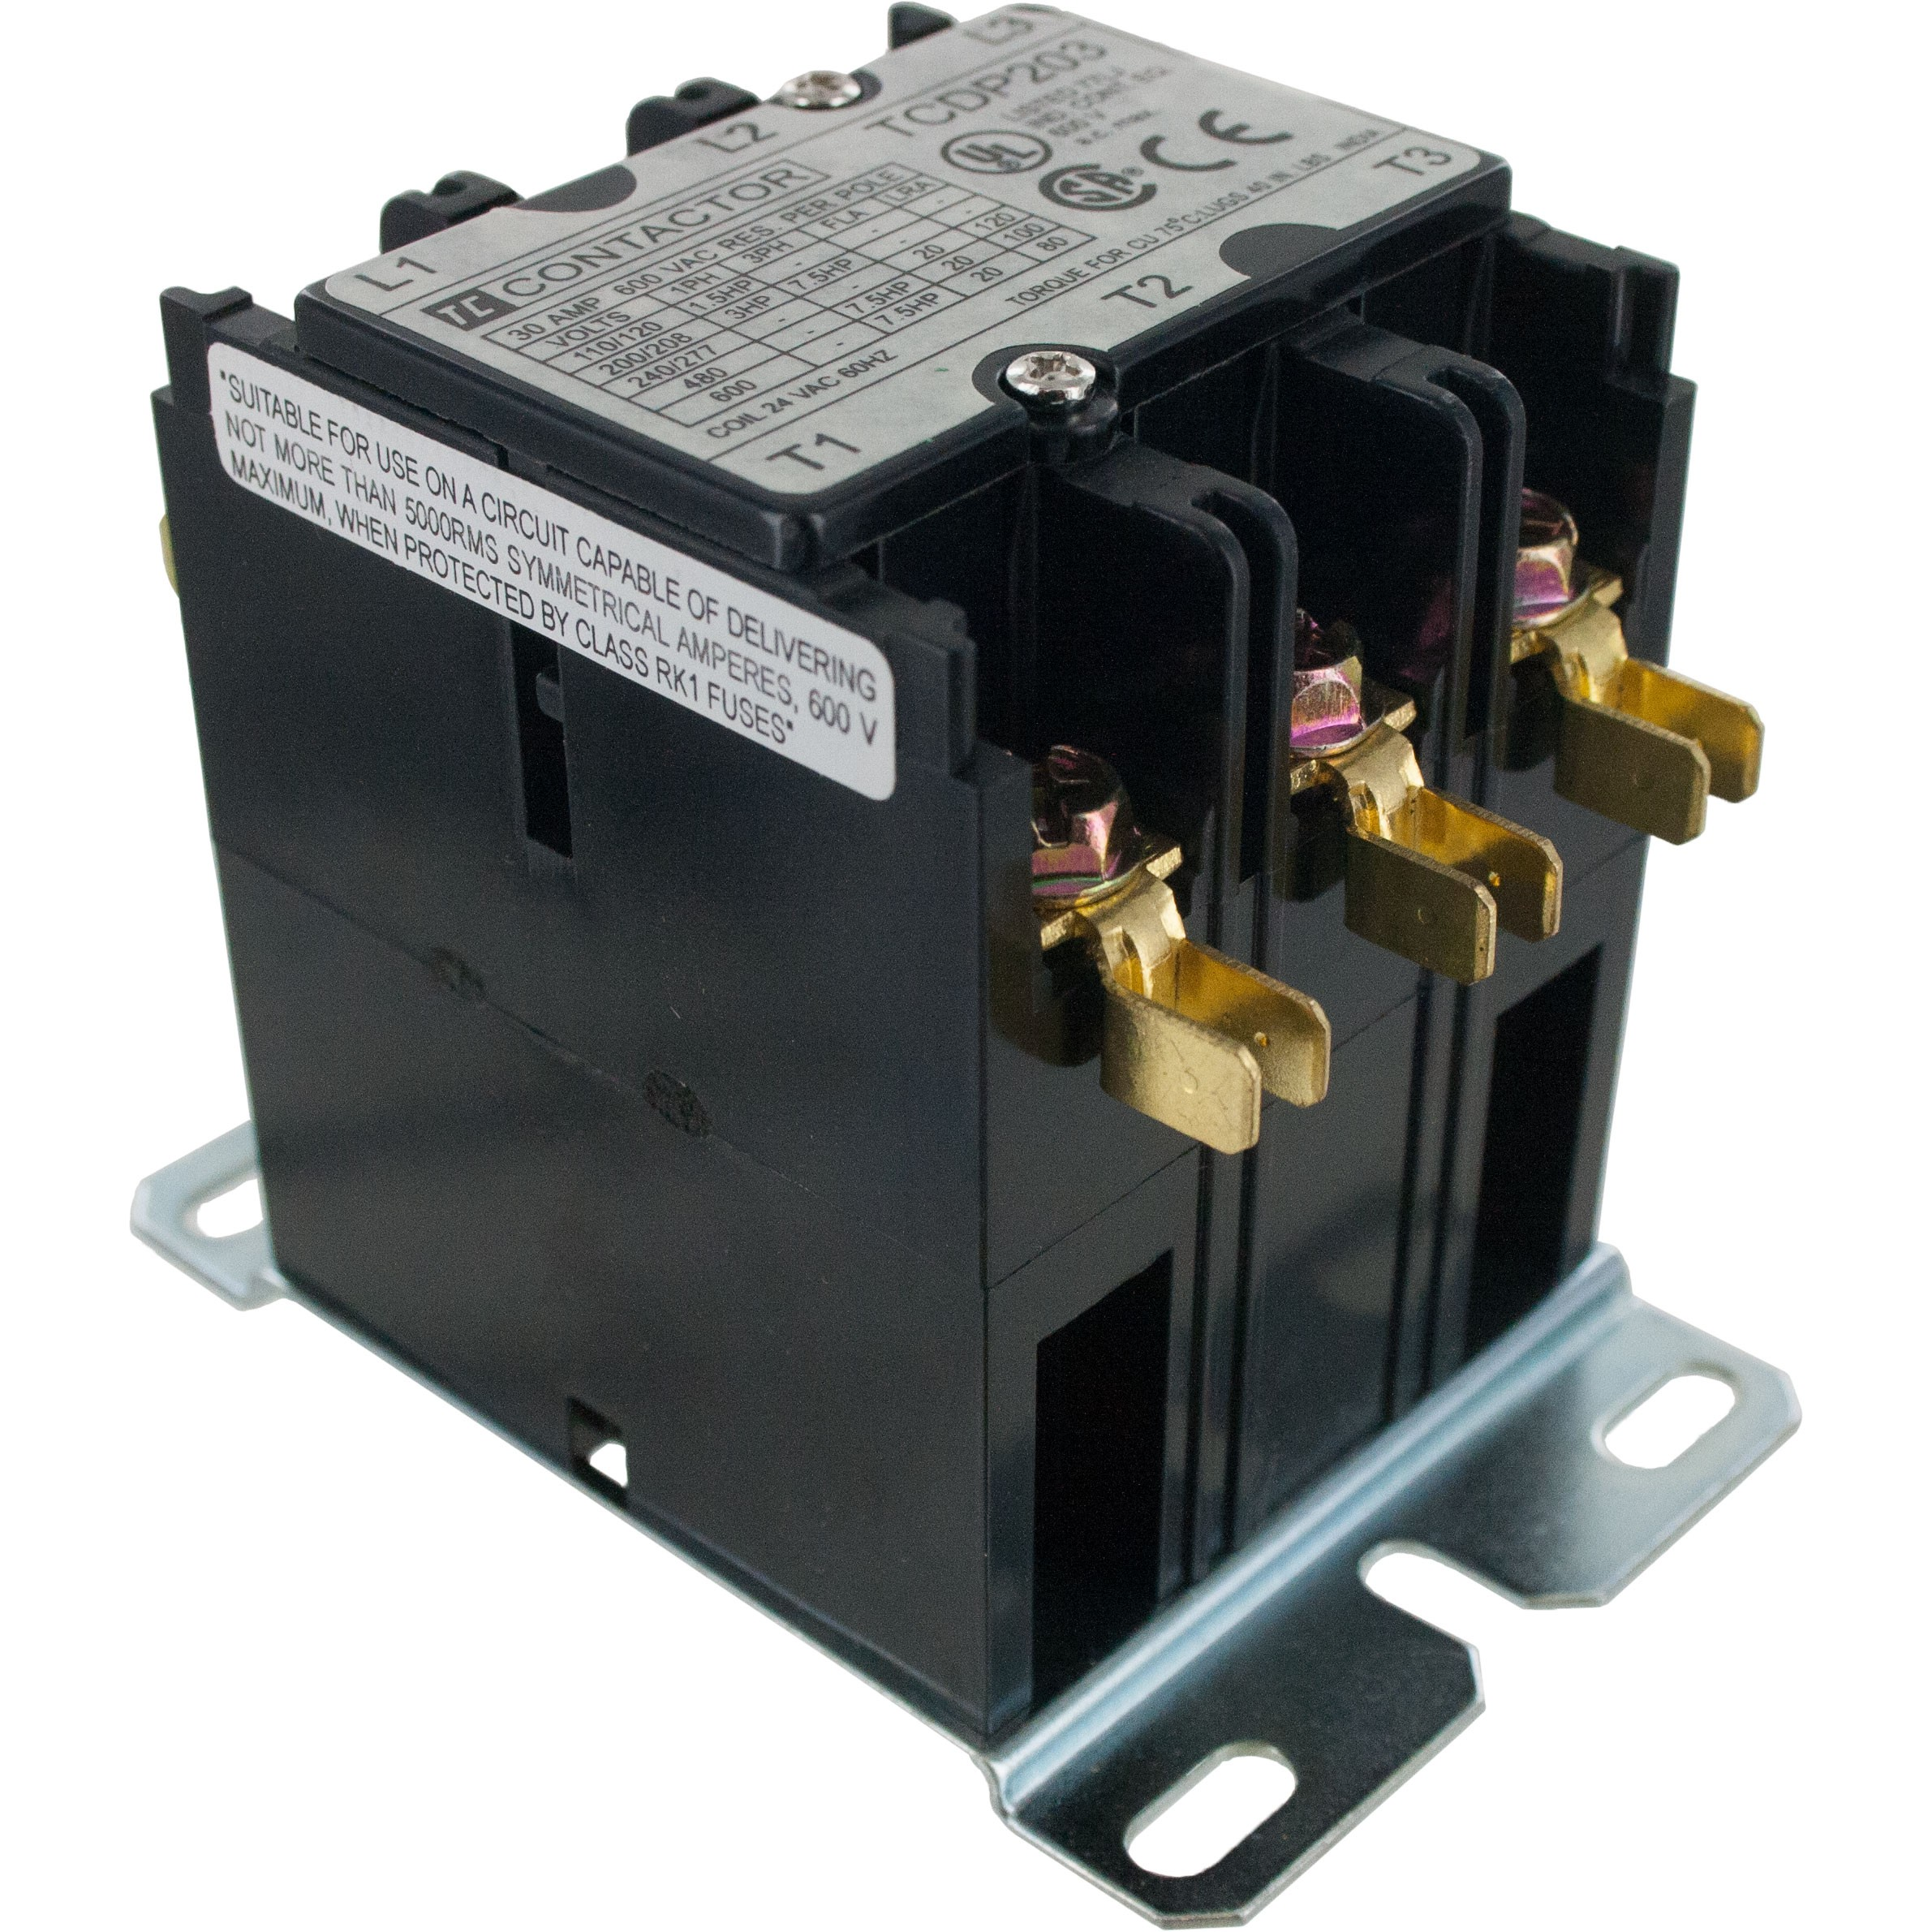 3 Pole Contactor 20 Amp 240vac Coil Elecdirect Micro Fuse Block With Box Lug